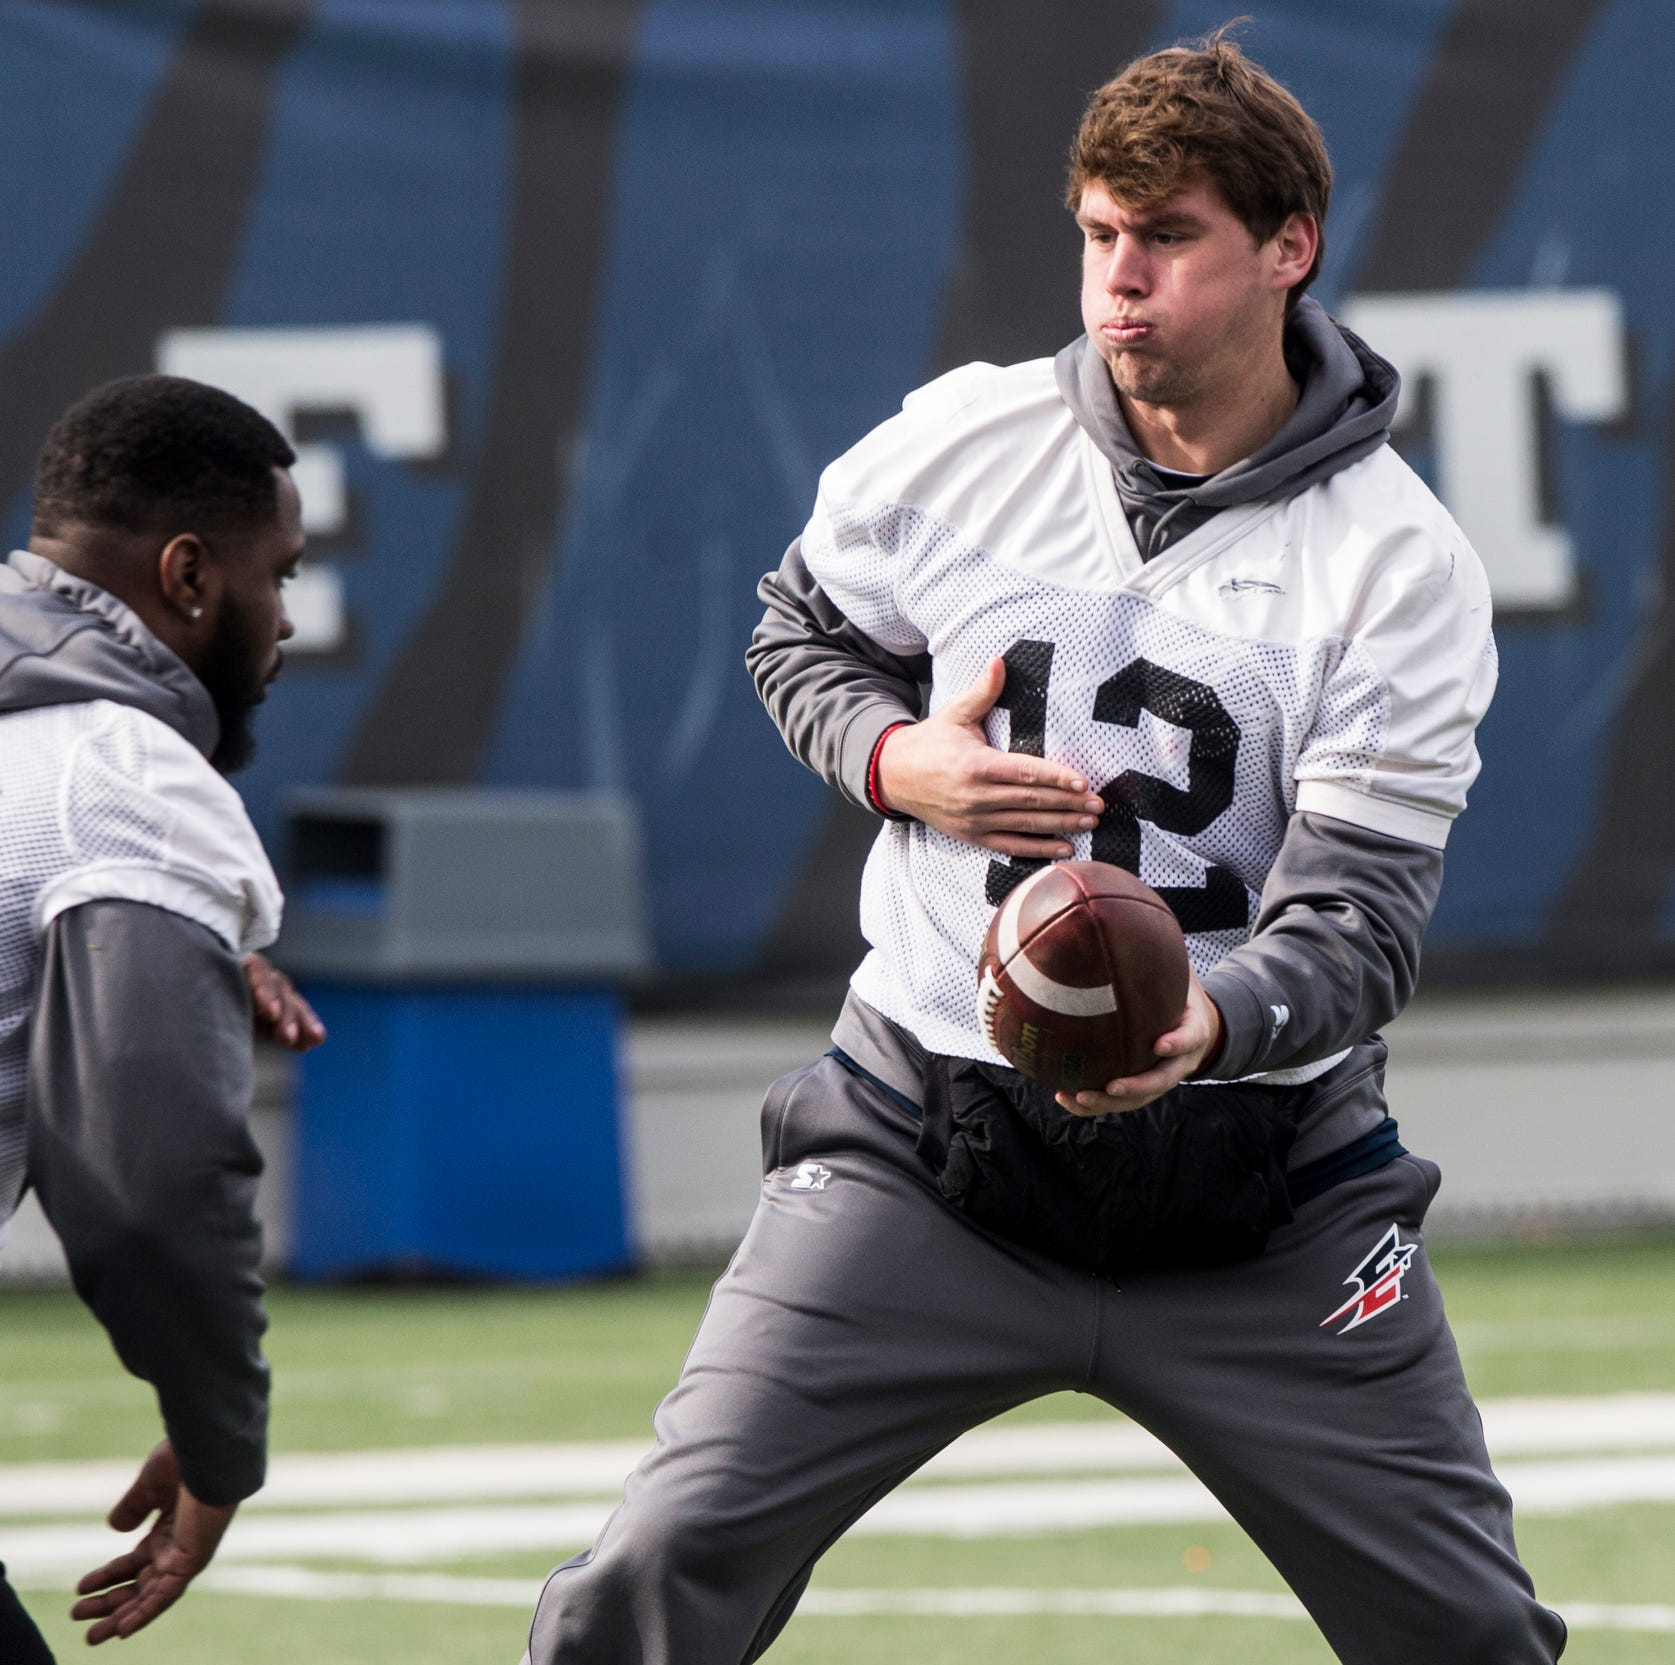 3 things to know about Memphis Express vs. Birmingham Iron — besides Johnny Manziel